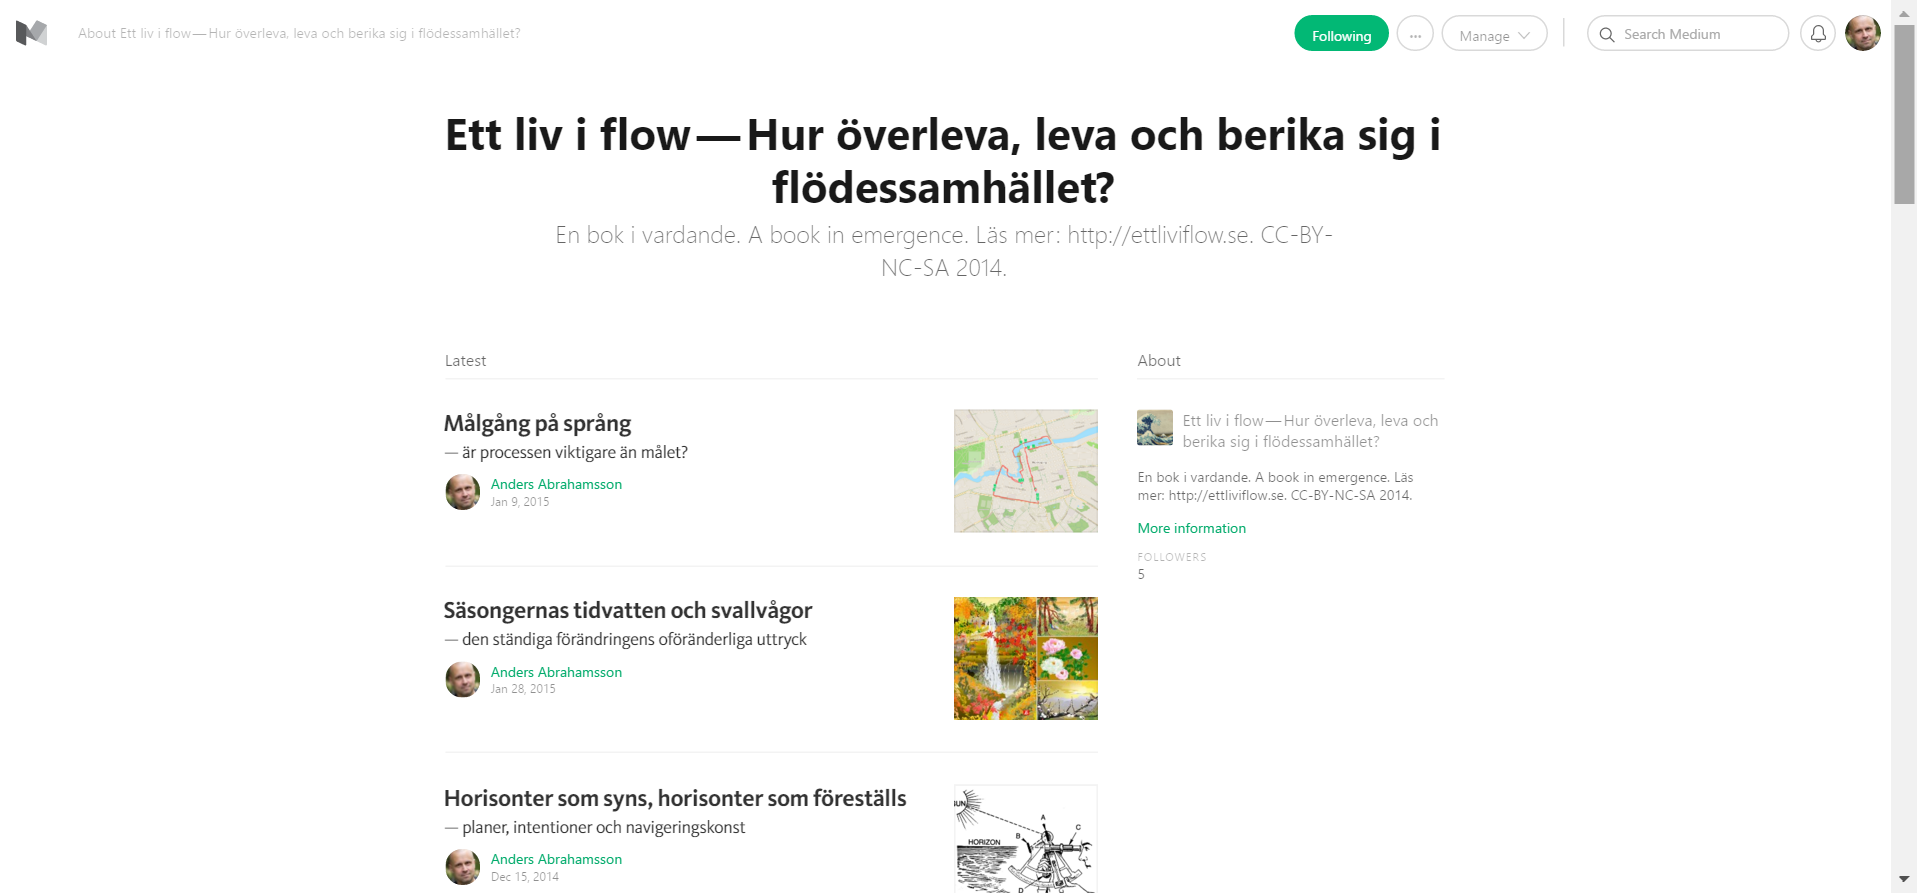 EttLivIFlow@Medium.com-2016-04-01